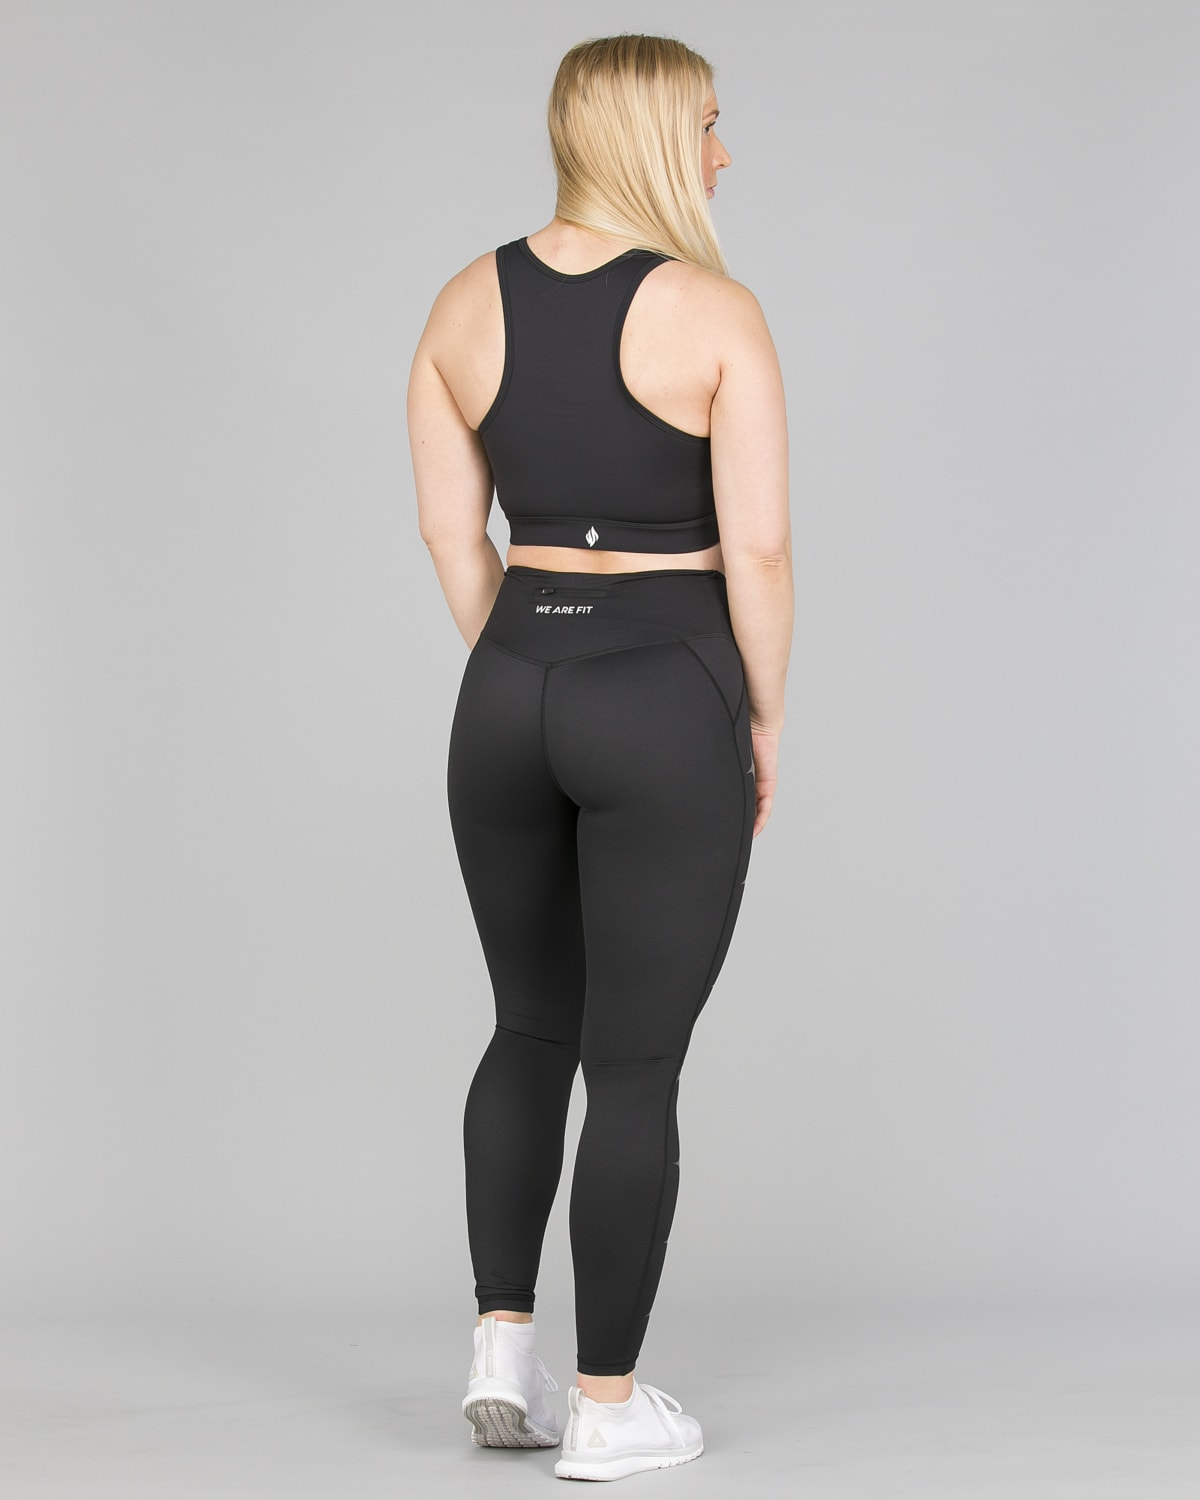 We Are Fit Star Black Tights10